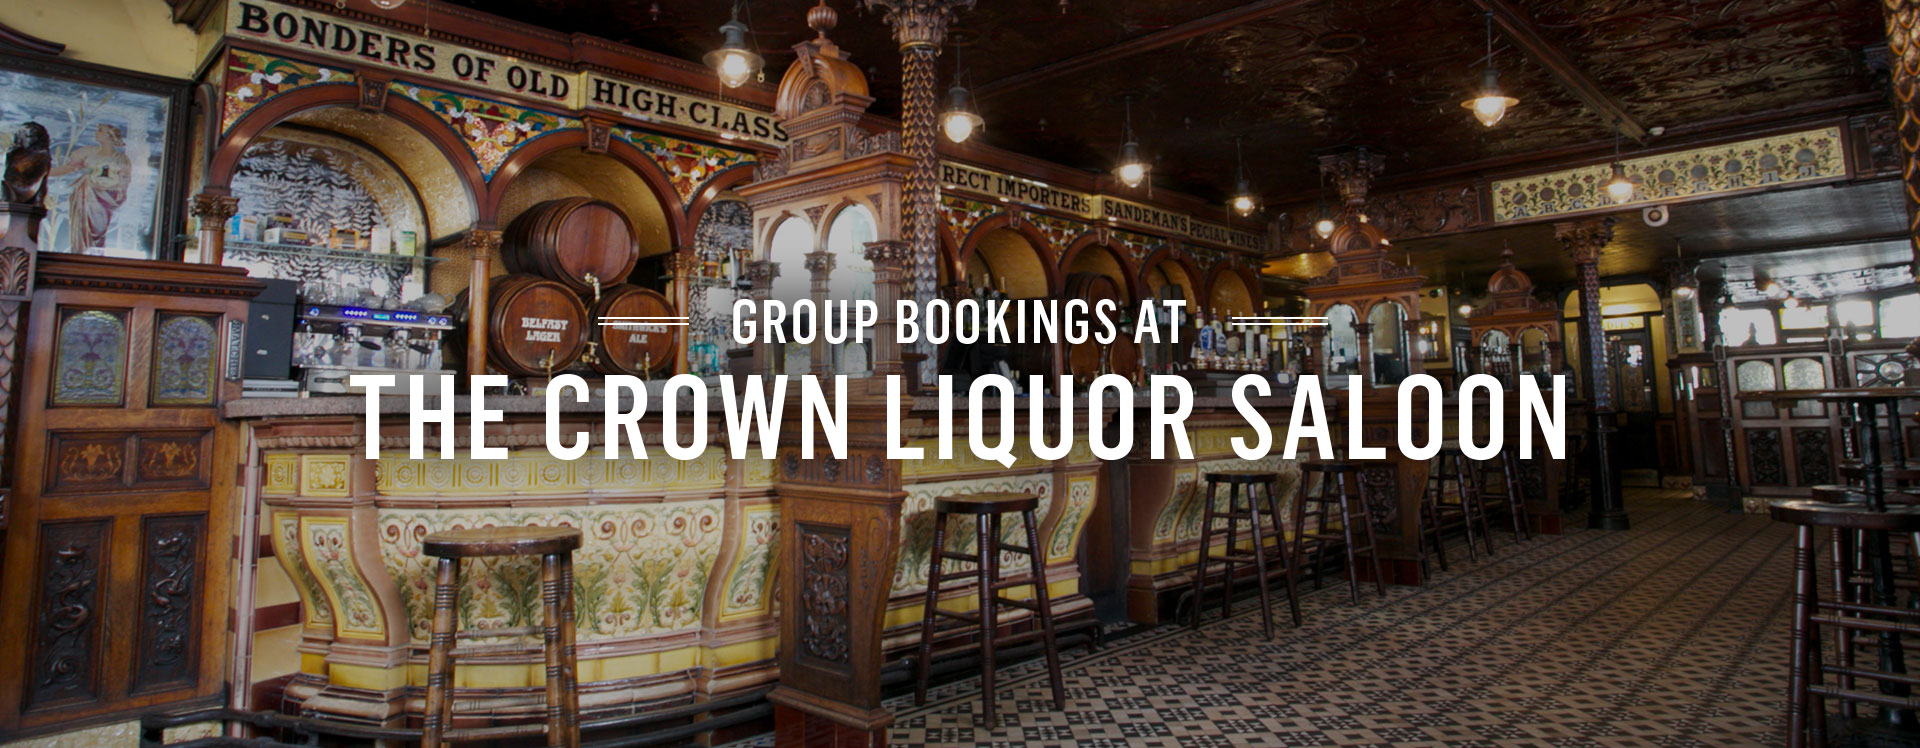 Group Bookings at The Crown Liquor Saloon